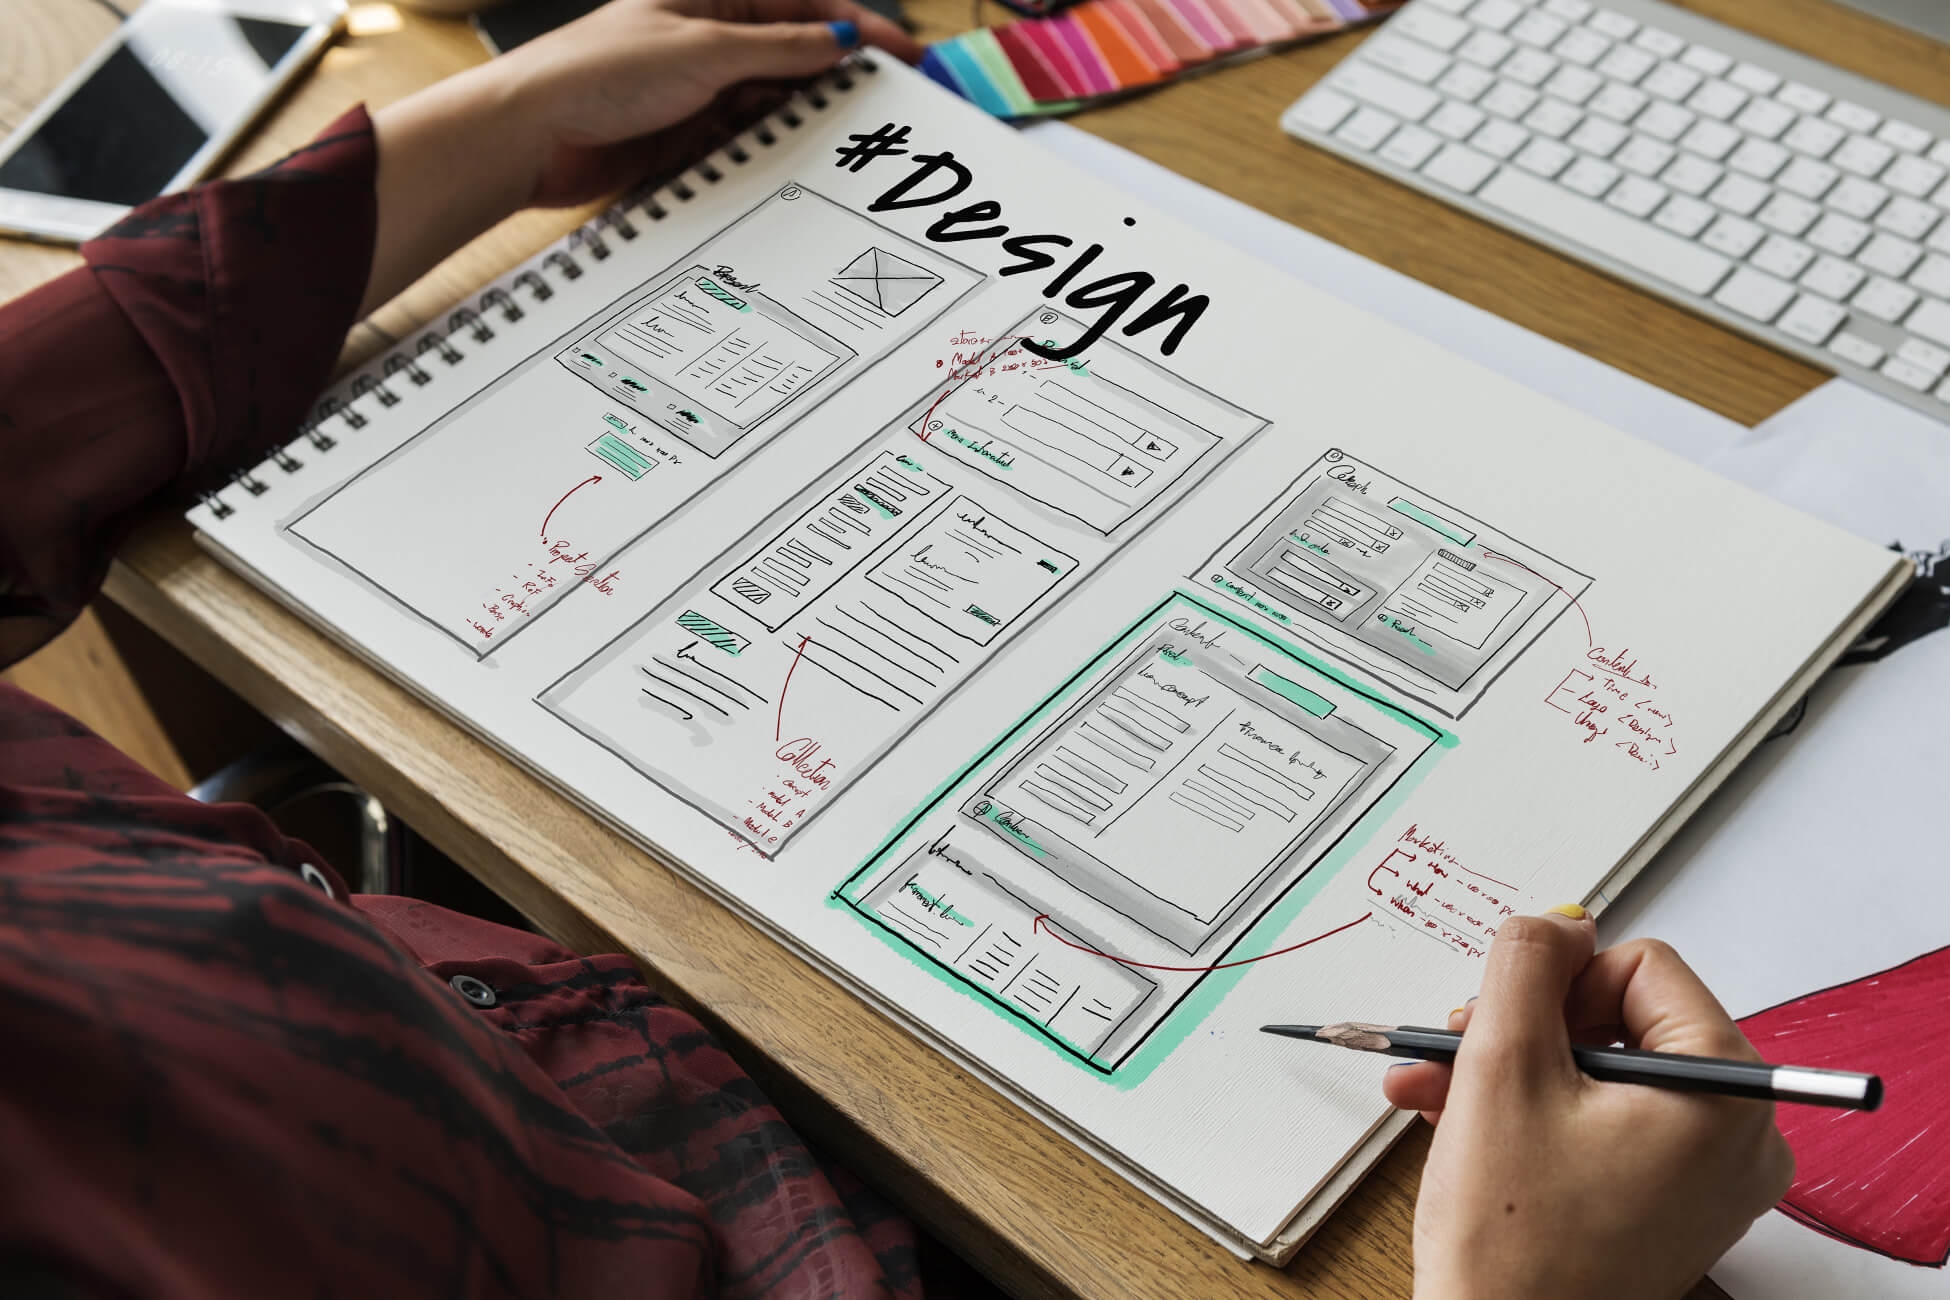 Custom website design services by Duel Marketing offer mobile friendly custom web presence for large and small businesses to enhance their brand, products and services.